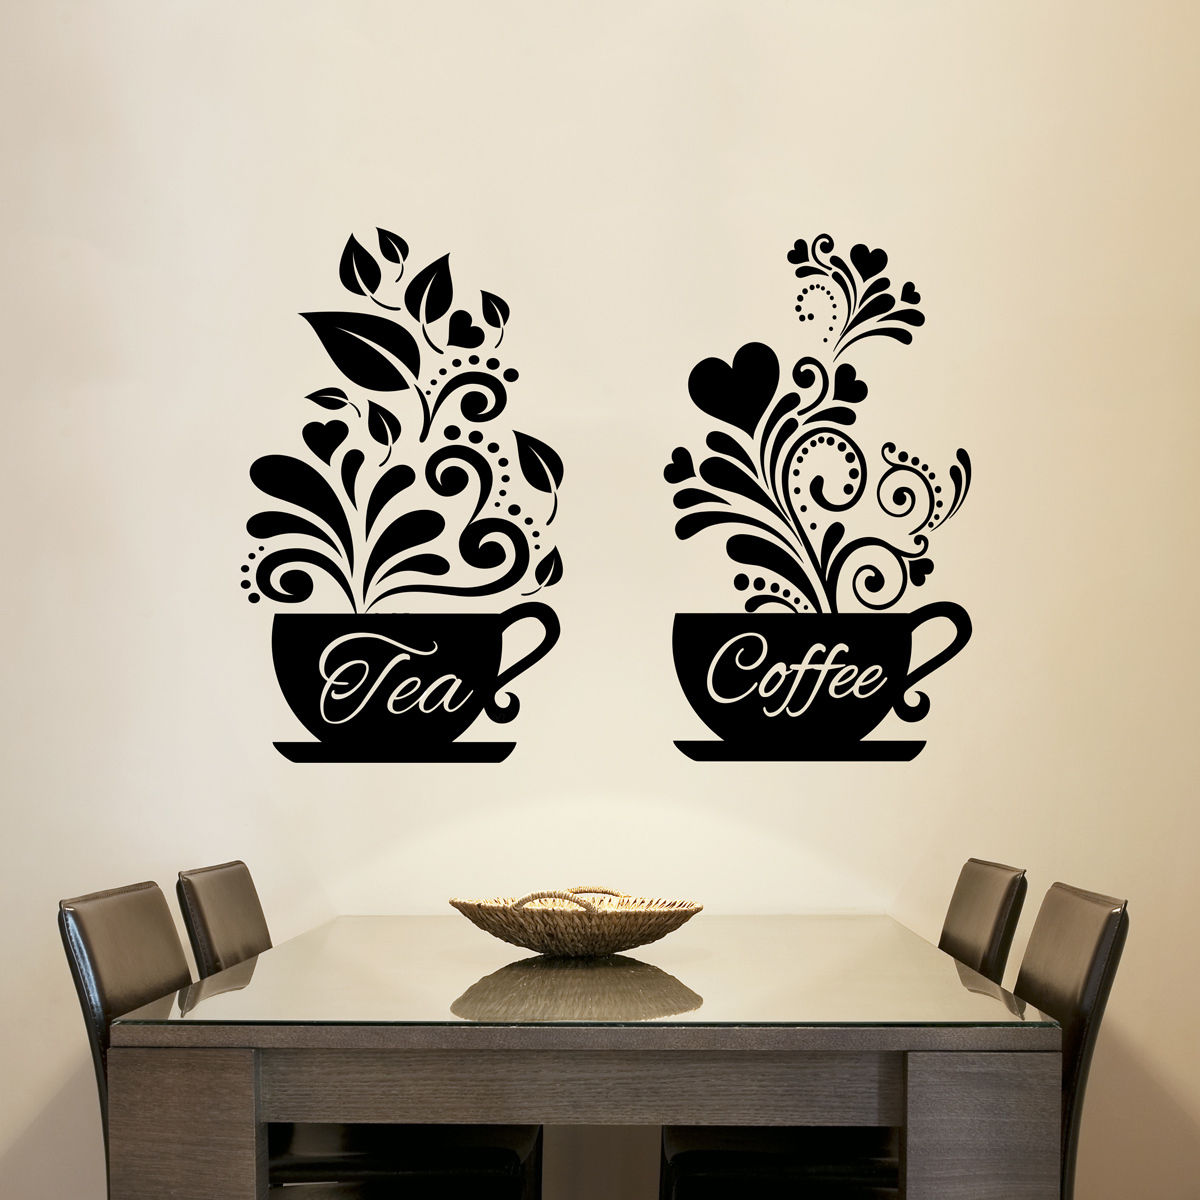 Coffee Cups Vinyl Sticker Kitchen Wall Art Decal | eBay